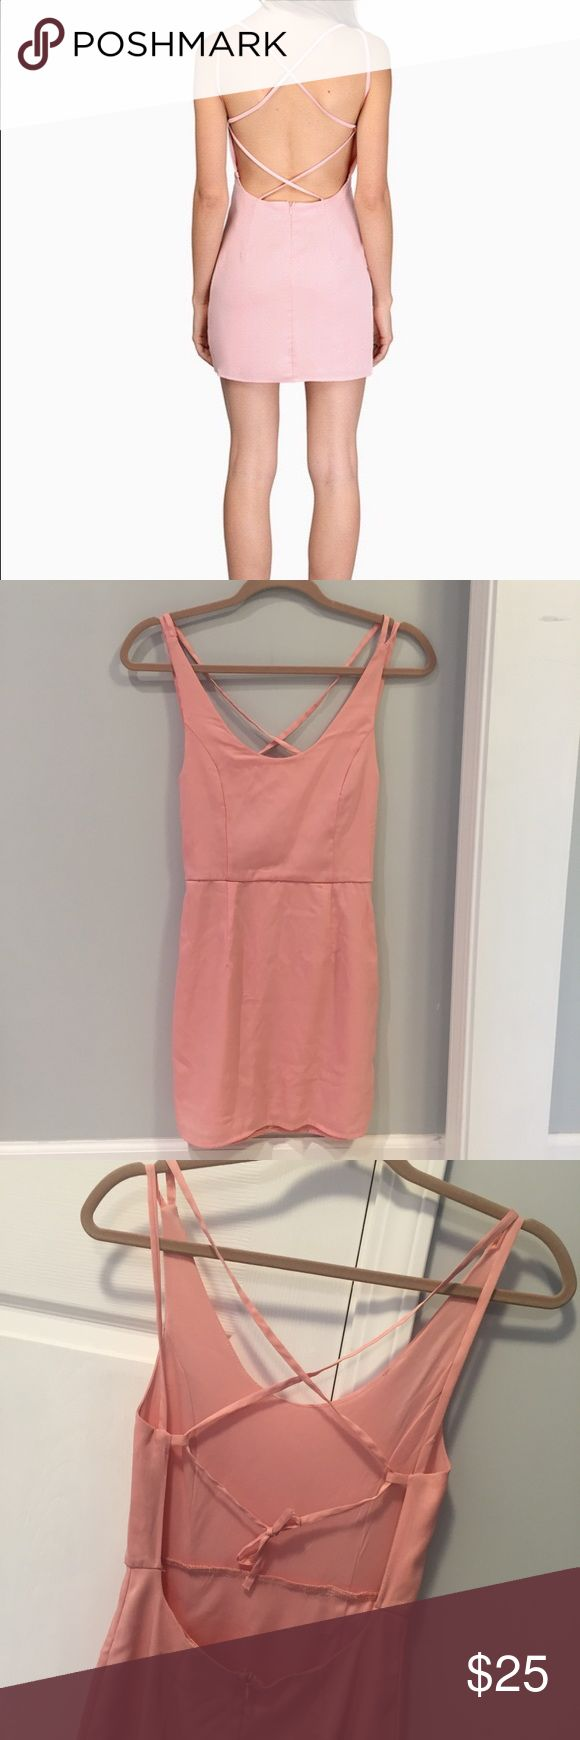 Tobi Criss Cross Back Blush Pink Mini Dress Small Size small Tobi Pink Criss Cross dress. Super sexy and great for going out, just pair it wth your favorite heels and you'll be good to go! No flaws! Tobi Dresses Mini